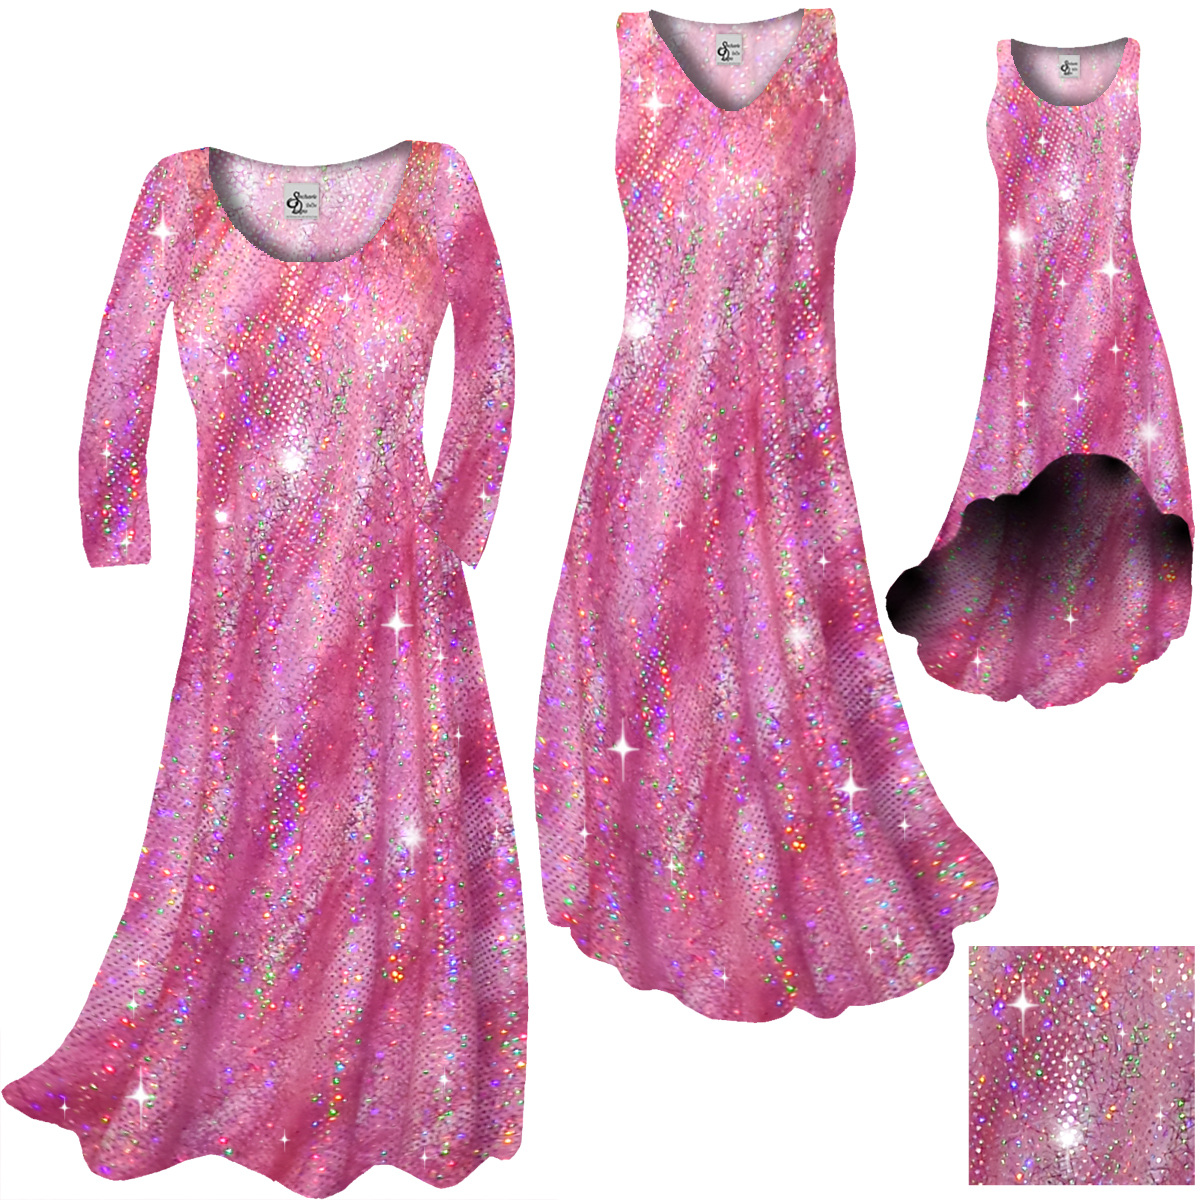 SOLD OUT! CLEARANCE! Pretty Hot Pink Sparkly Sequins Print Plus ...